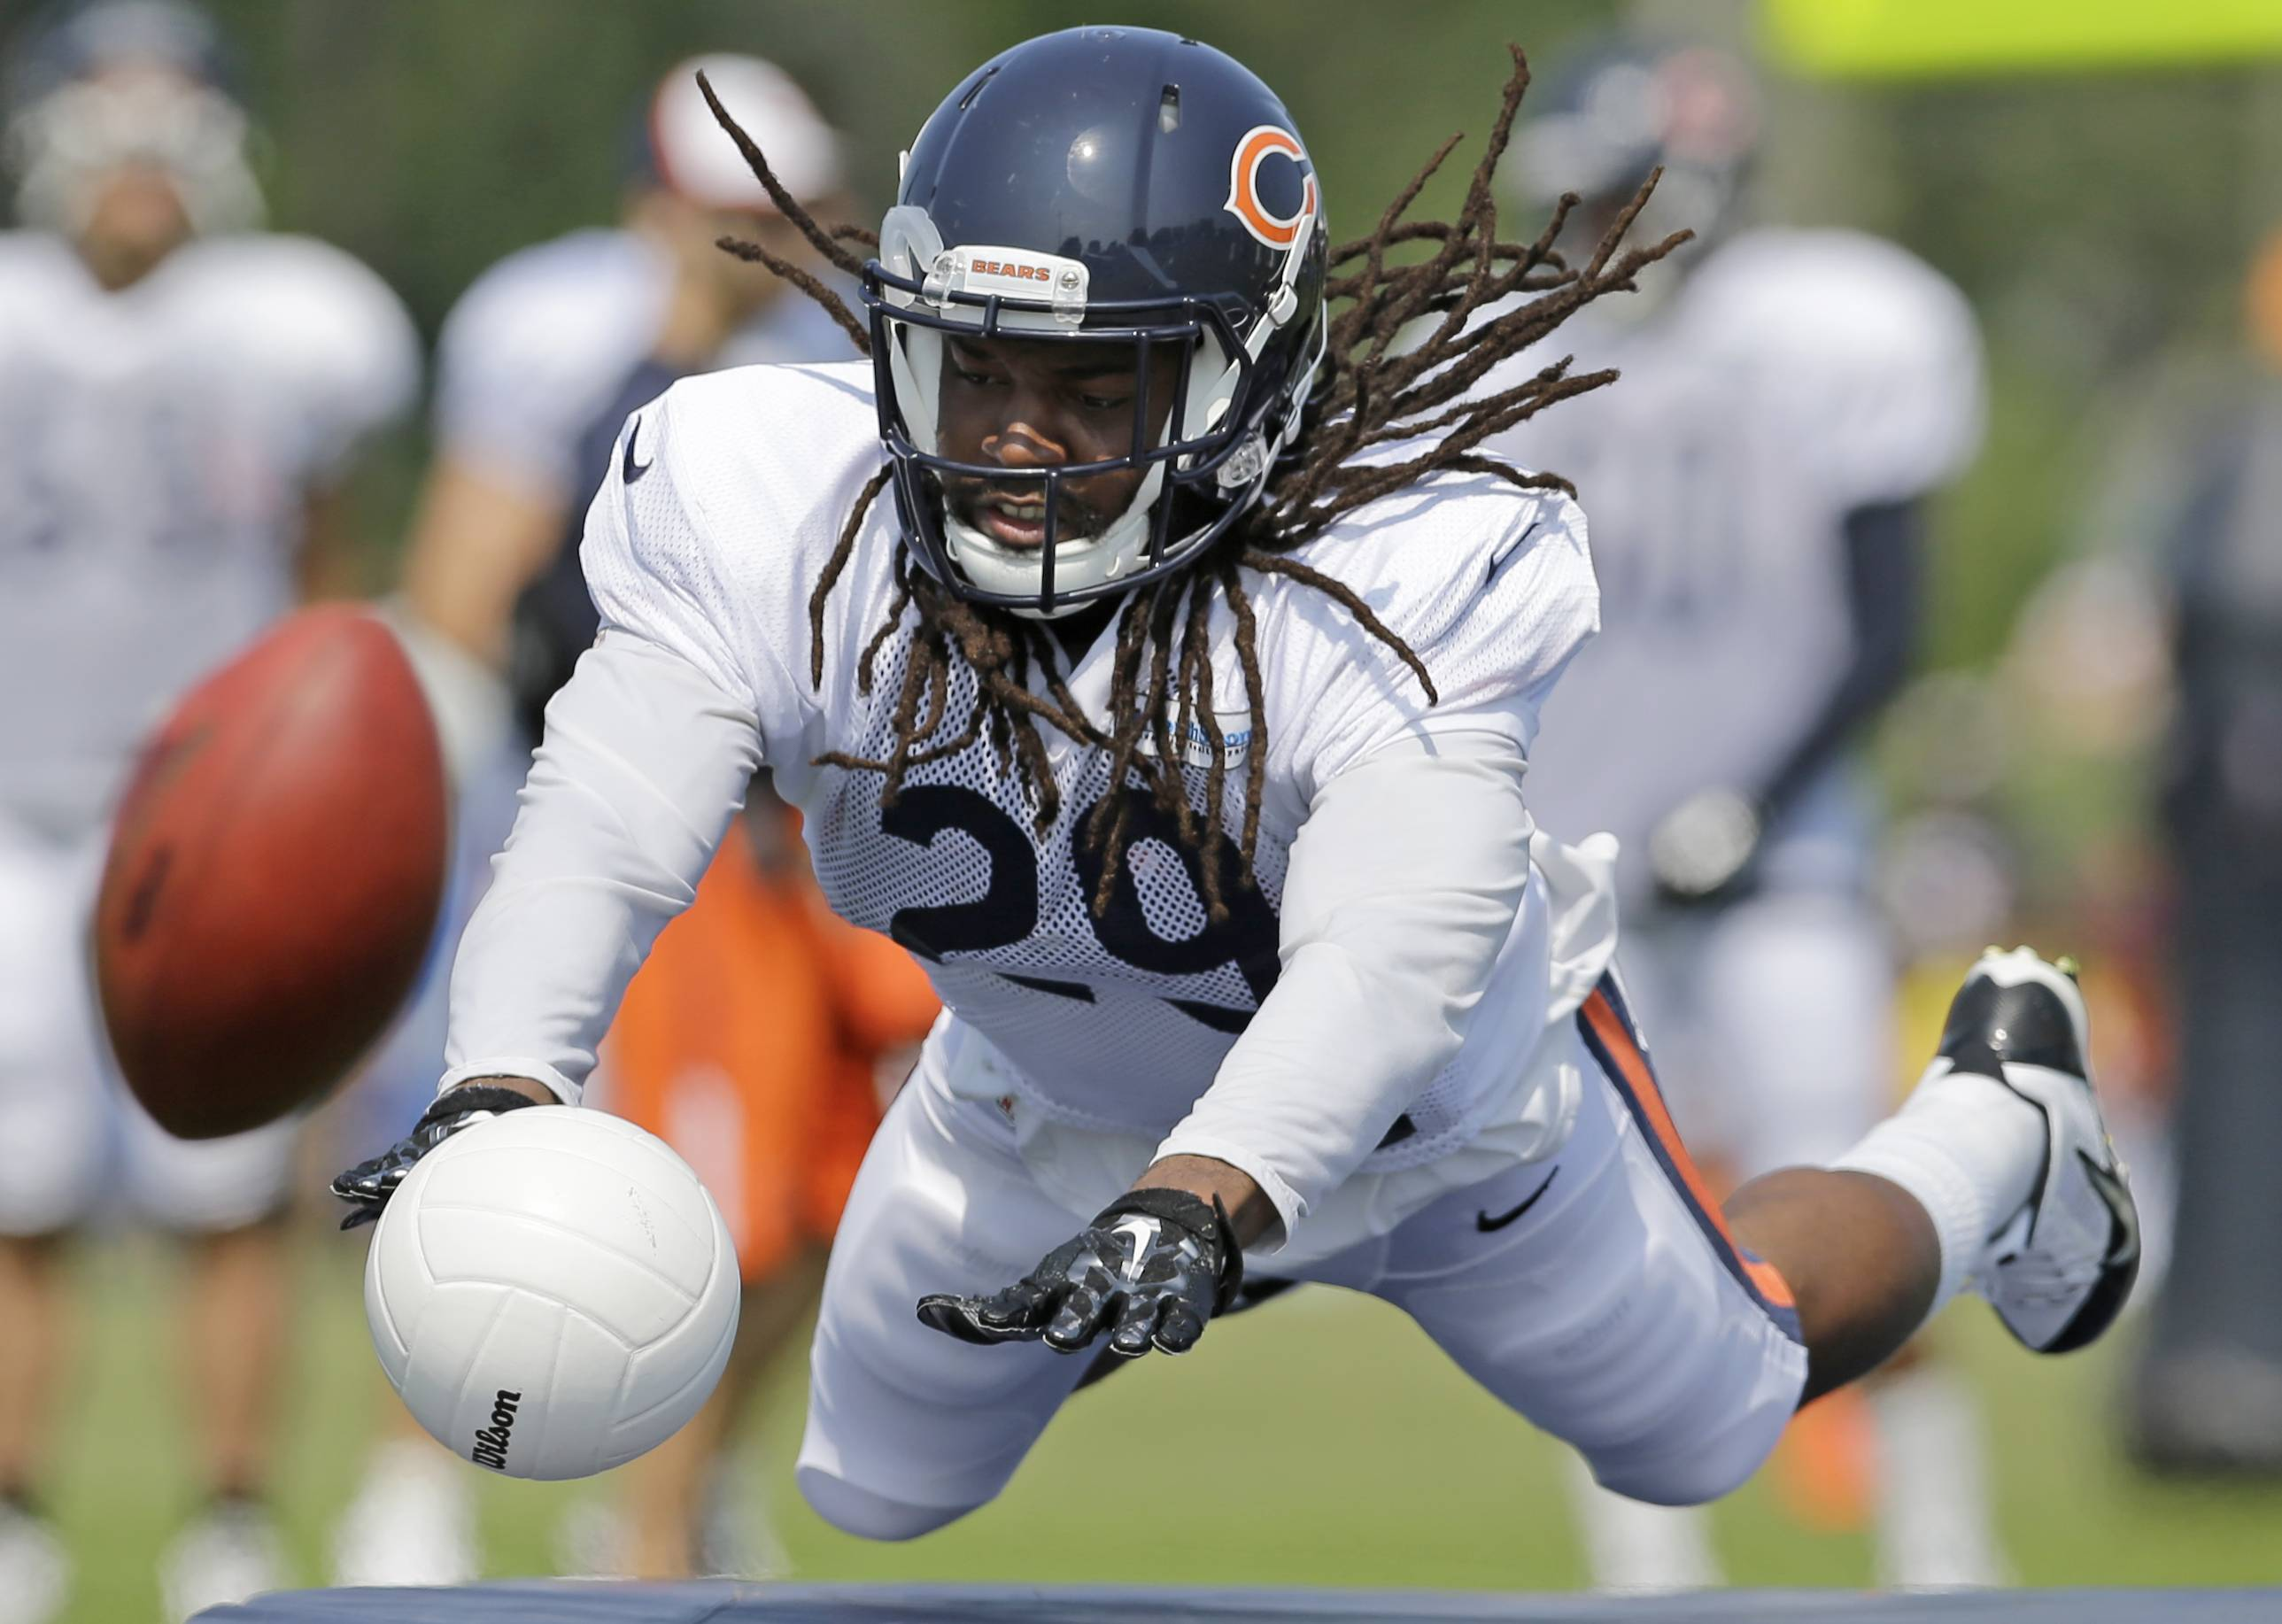 Bears safety Danny McCray blocks a ball during Wednesday's training-camp workout, when he was paired on the first team with fellow newcomer Ryan Mundy.